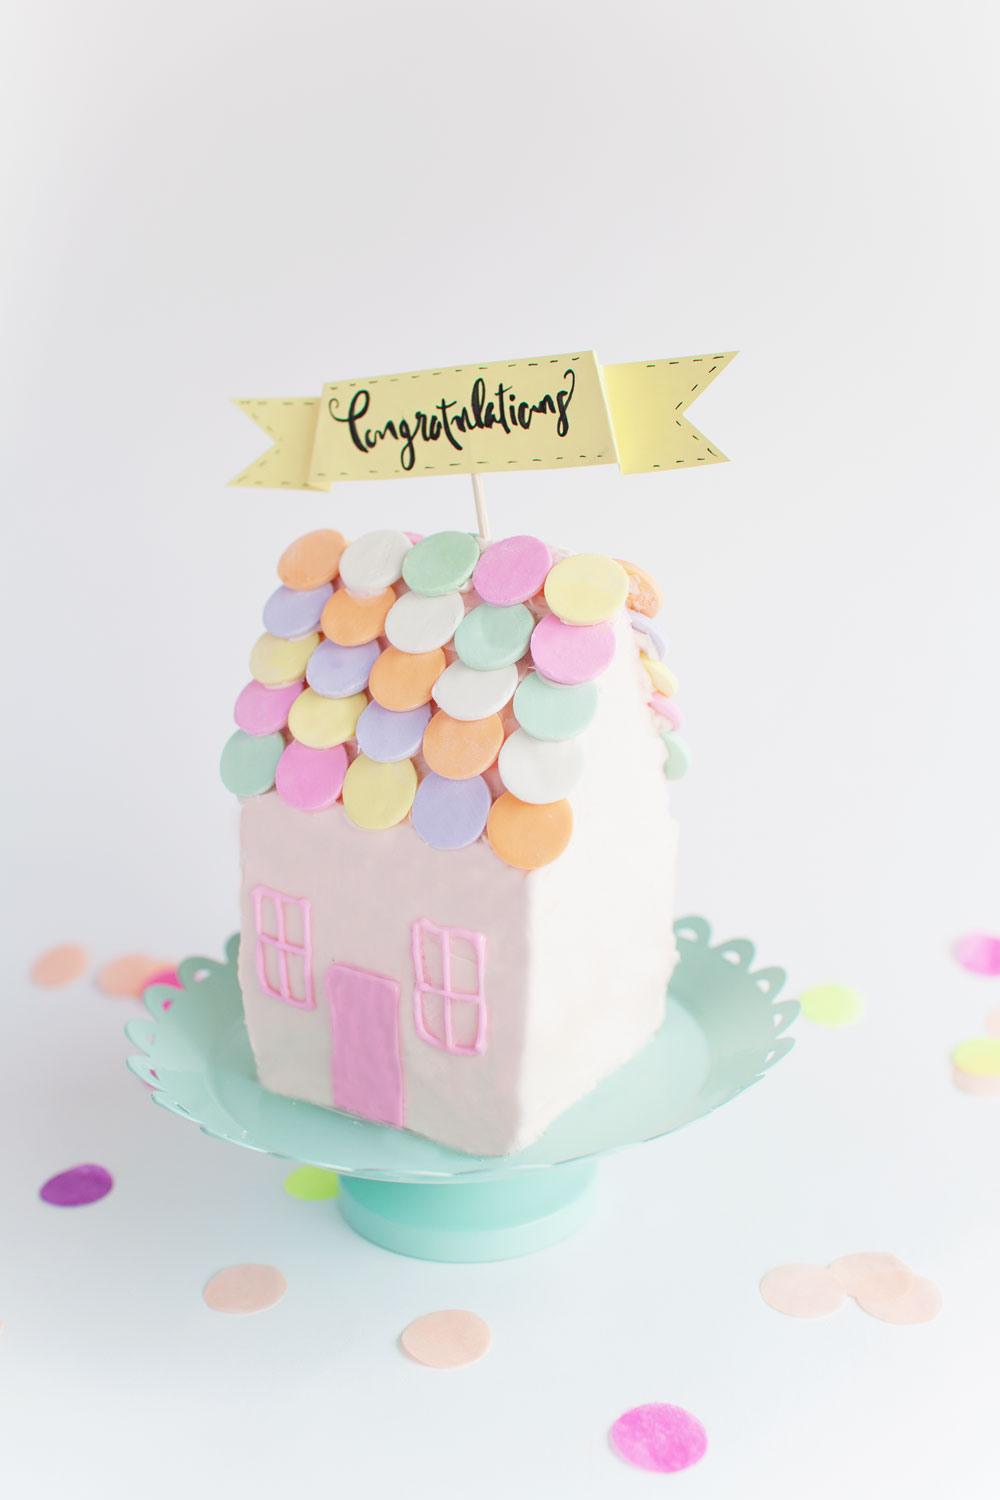 Housewarming cake idea  sc 1 st  Tell Love and Party & DIY HOUSE CAKE - Tell Love and Party